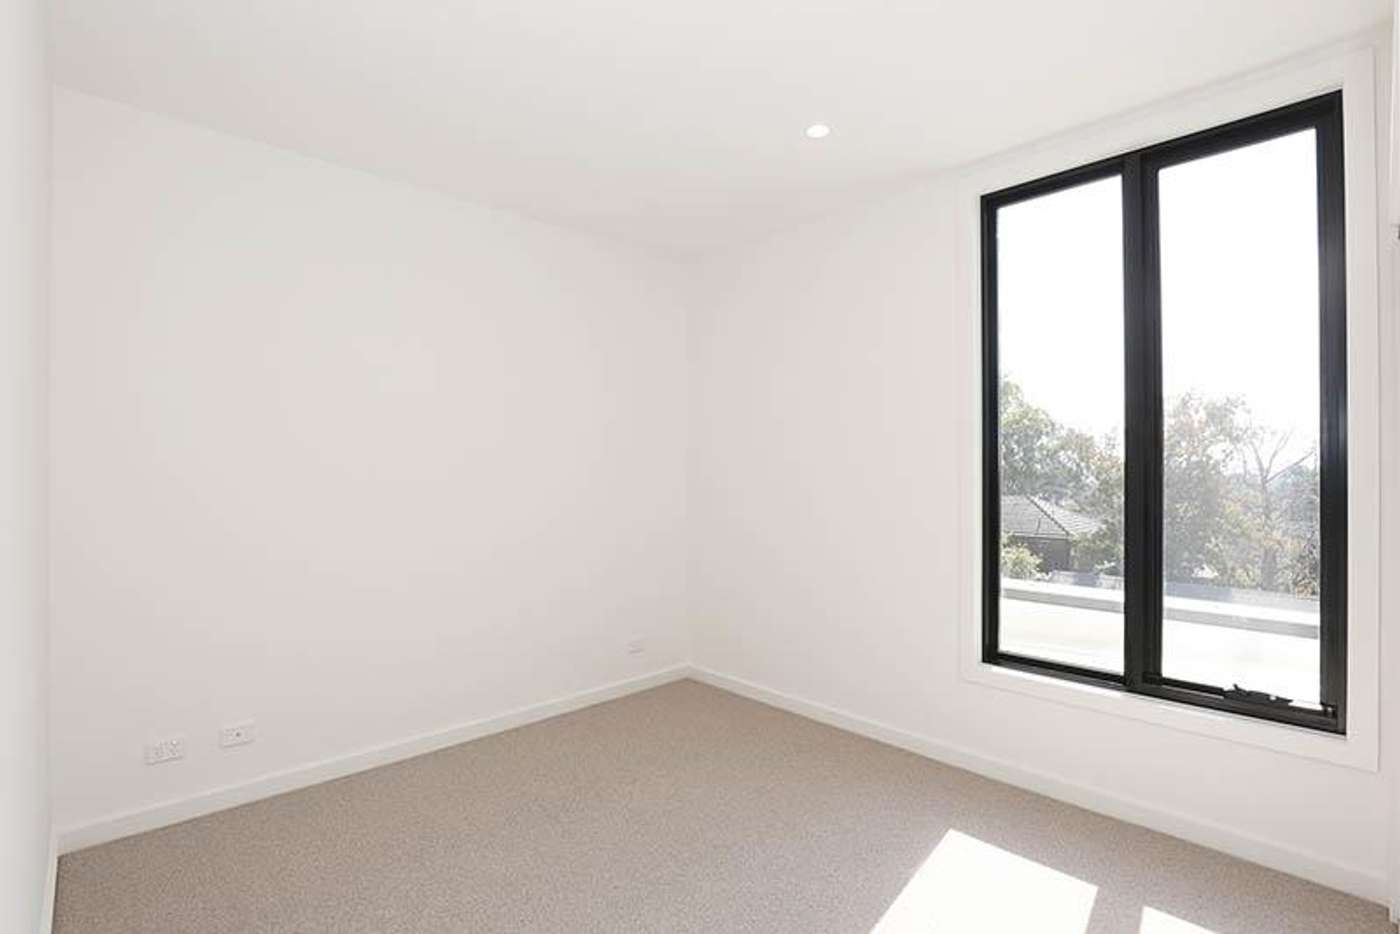 Sixth view of Homely townhouse listing, 8 Harvest Court, Doncaster VIC 3108